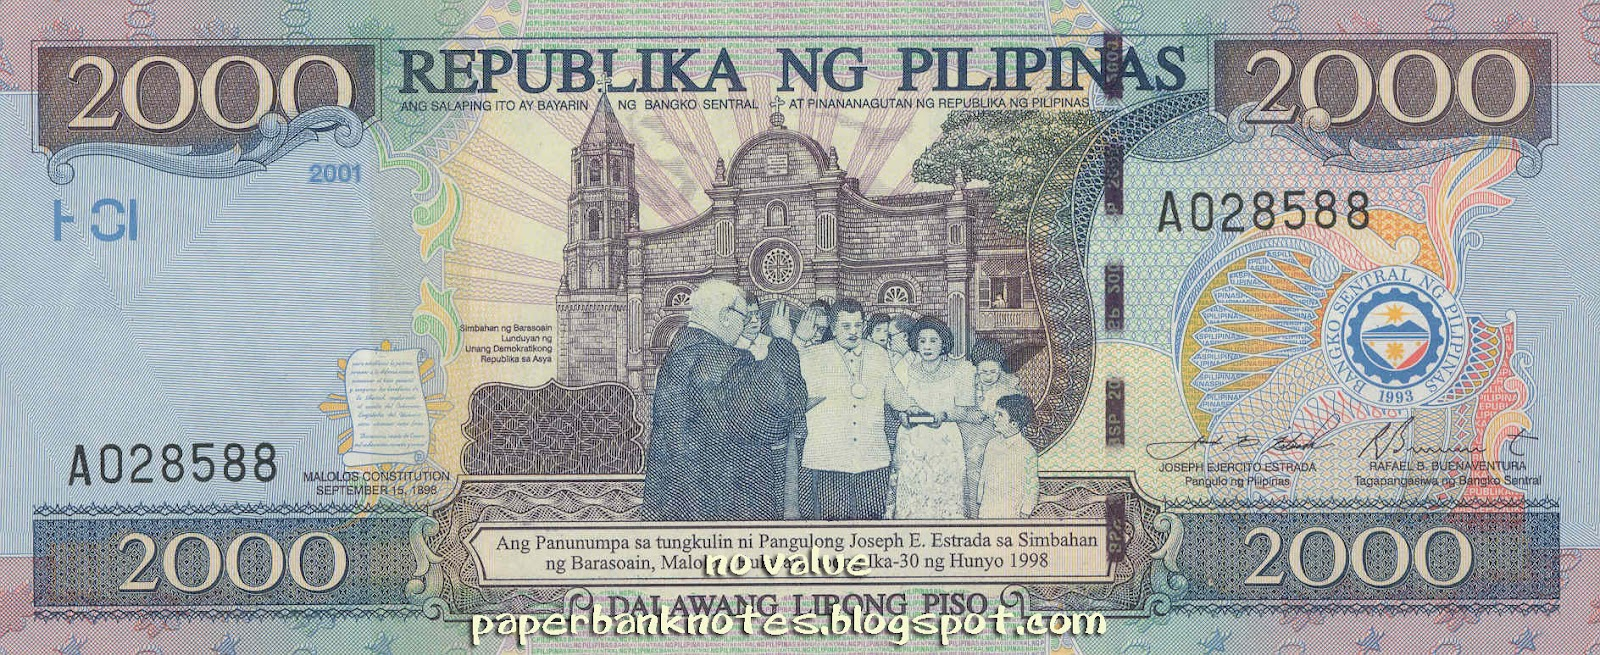 South east asia paperbanknotes philippines 2000 pesos 2001 unissued